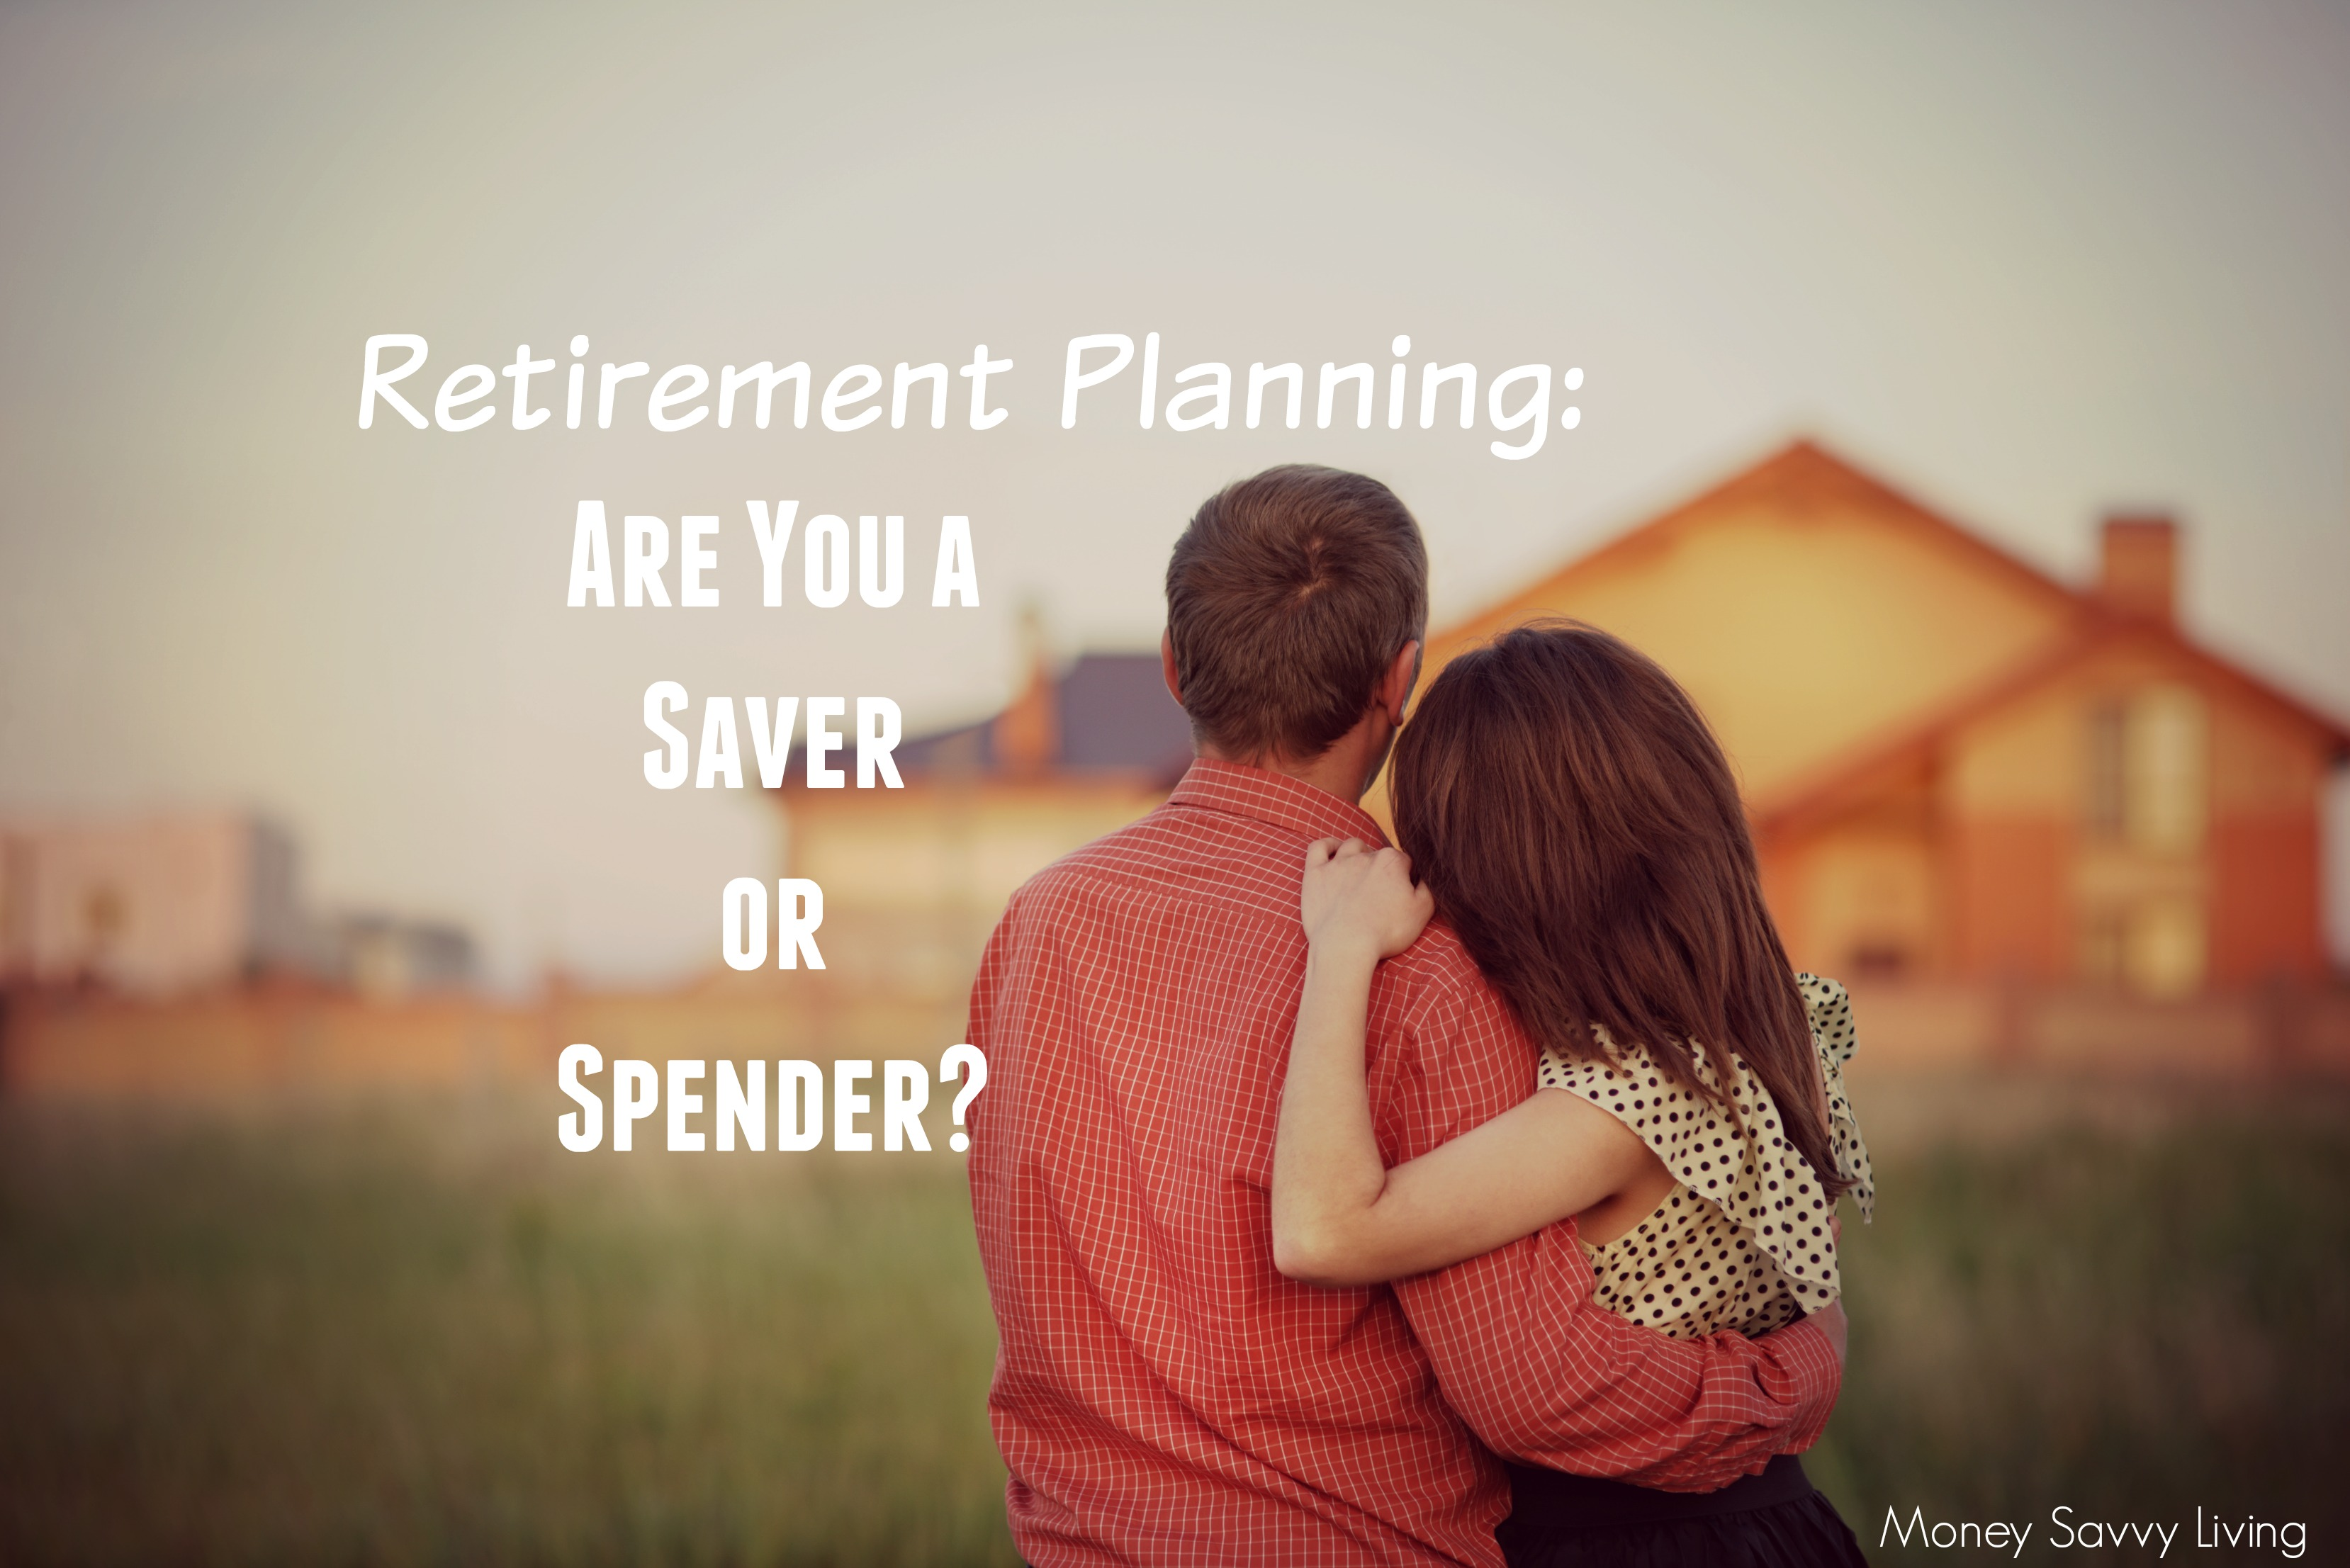 Retirement Planning: Are You a Saver or Spender?   Money Savvy Living